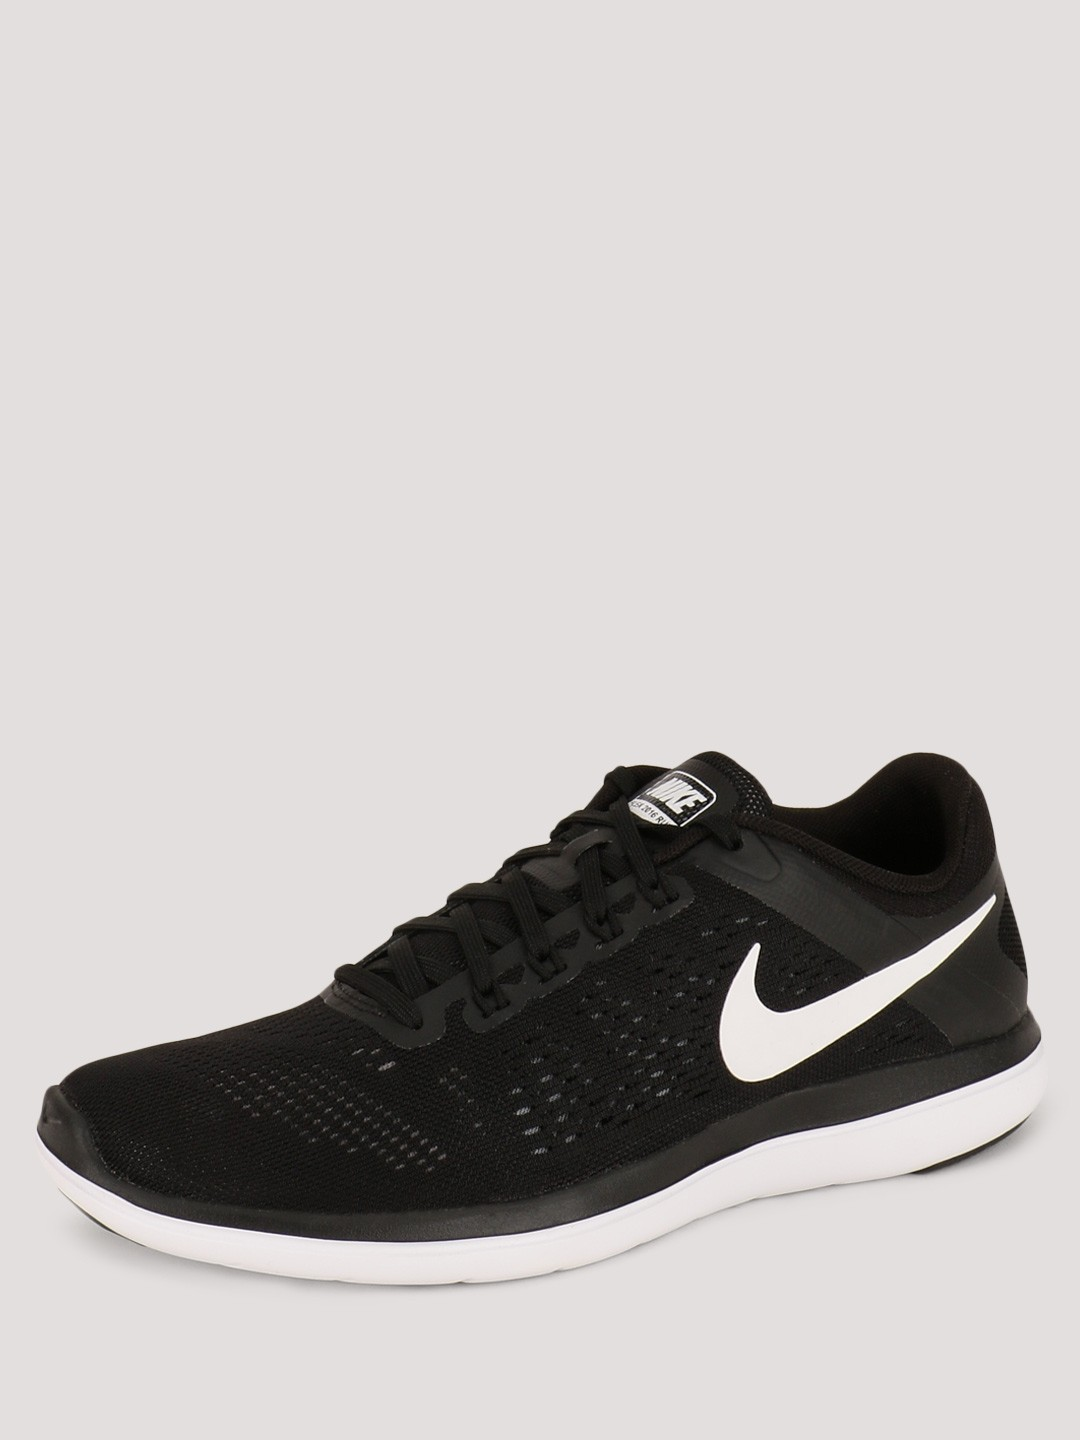 timeless design d727e cb2a5 Buy Nike Black Flex 2016 Rn Trainers for Girls Online in India